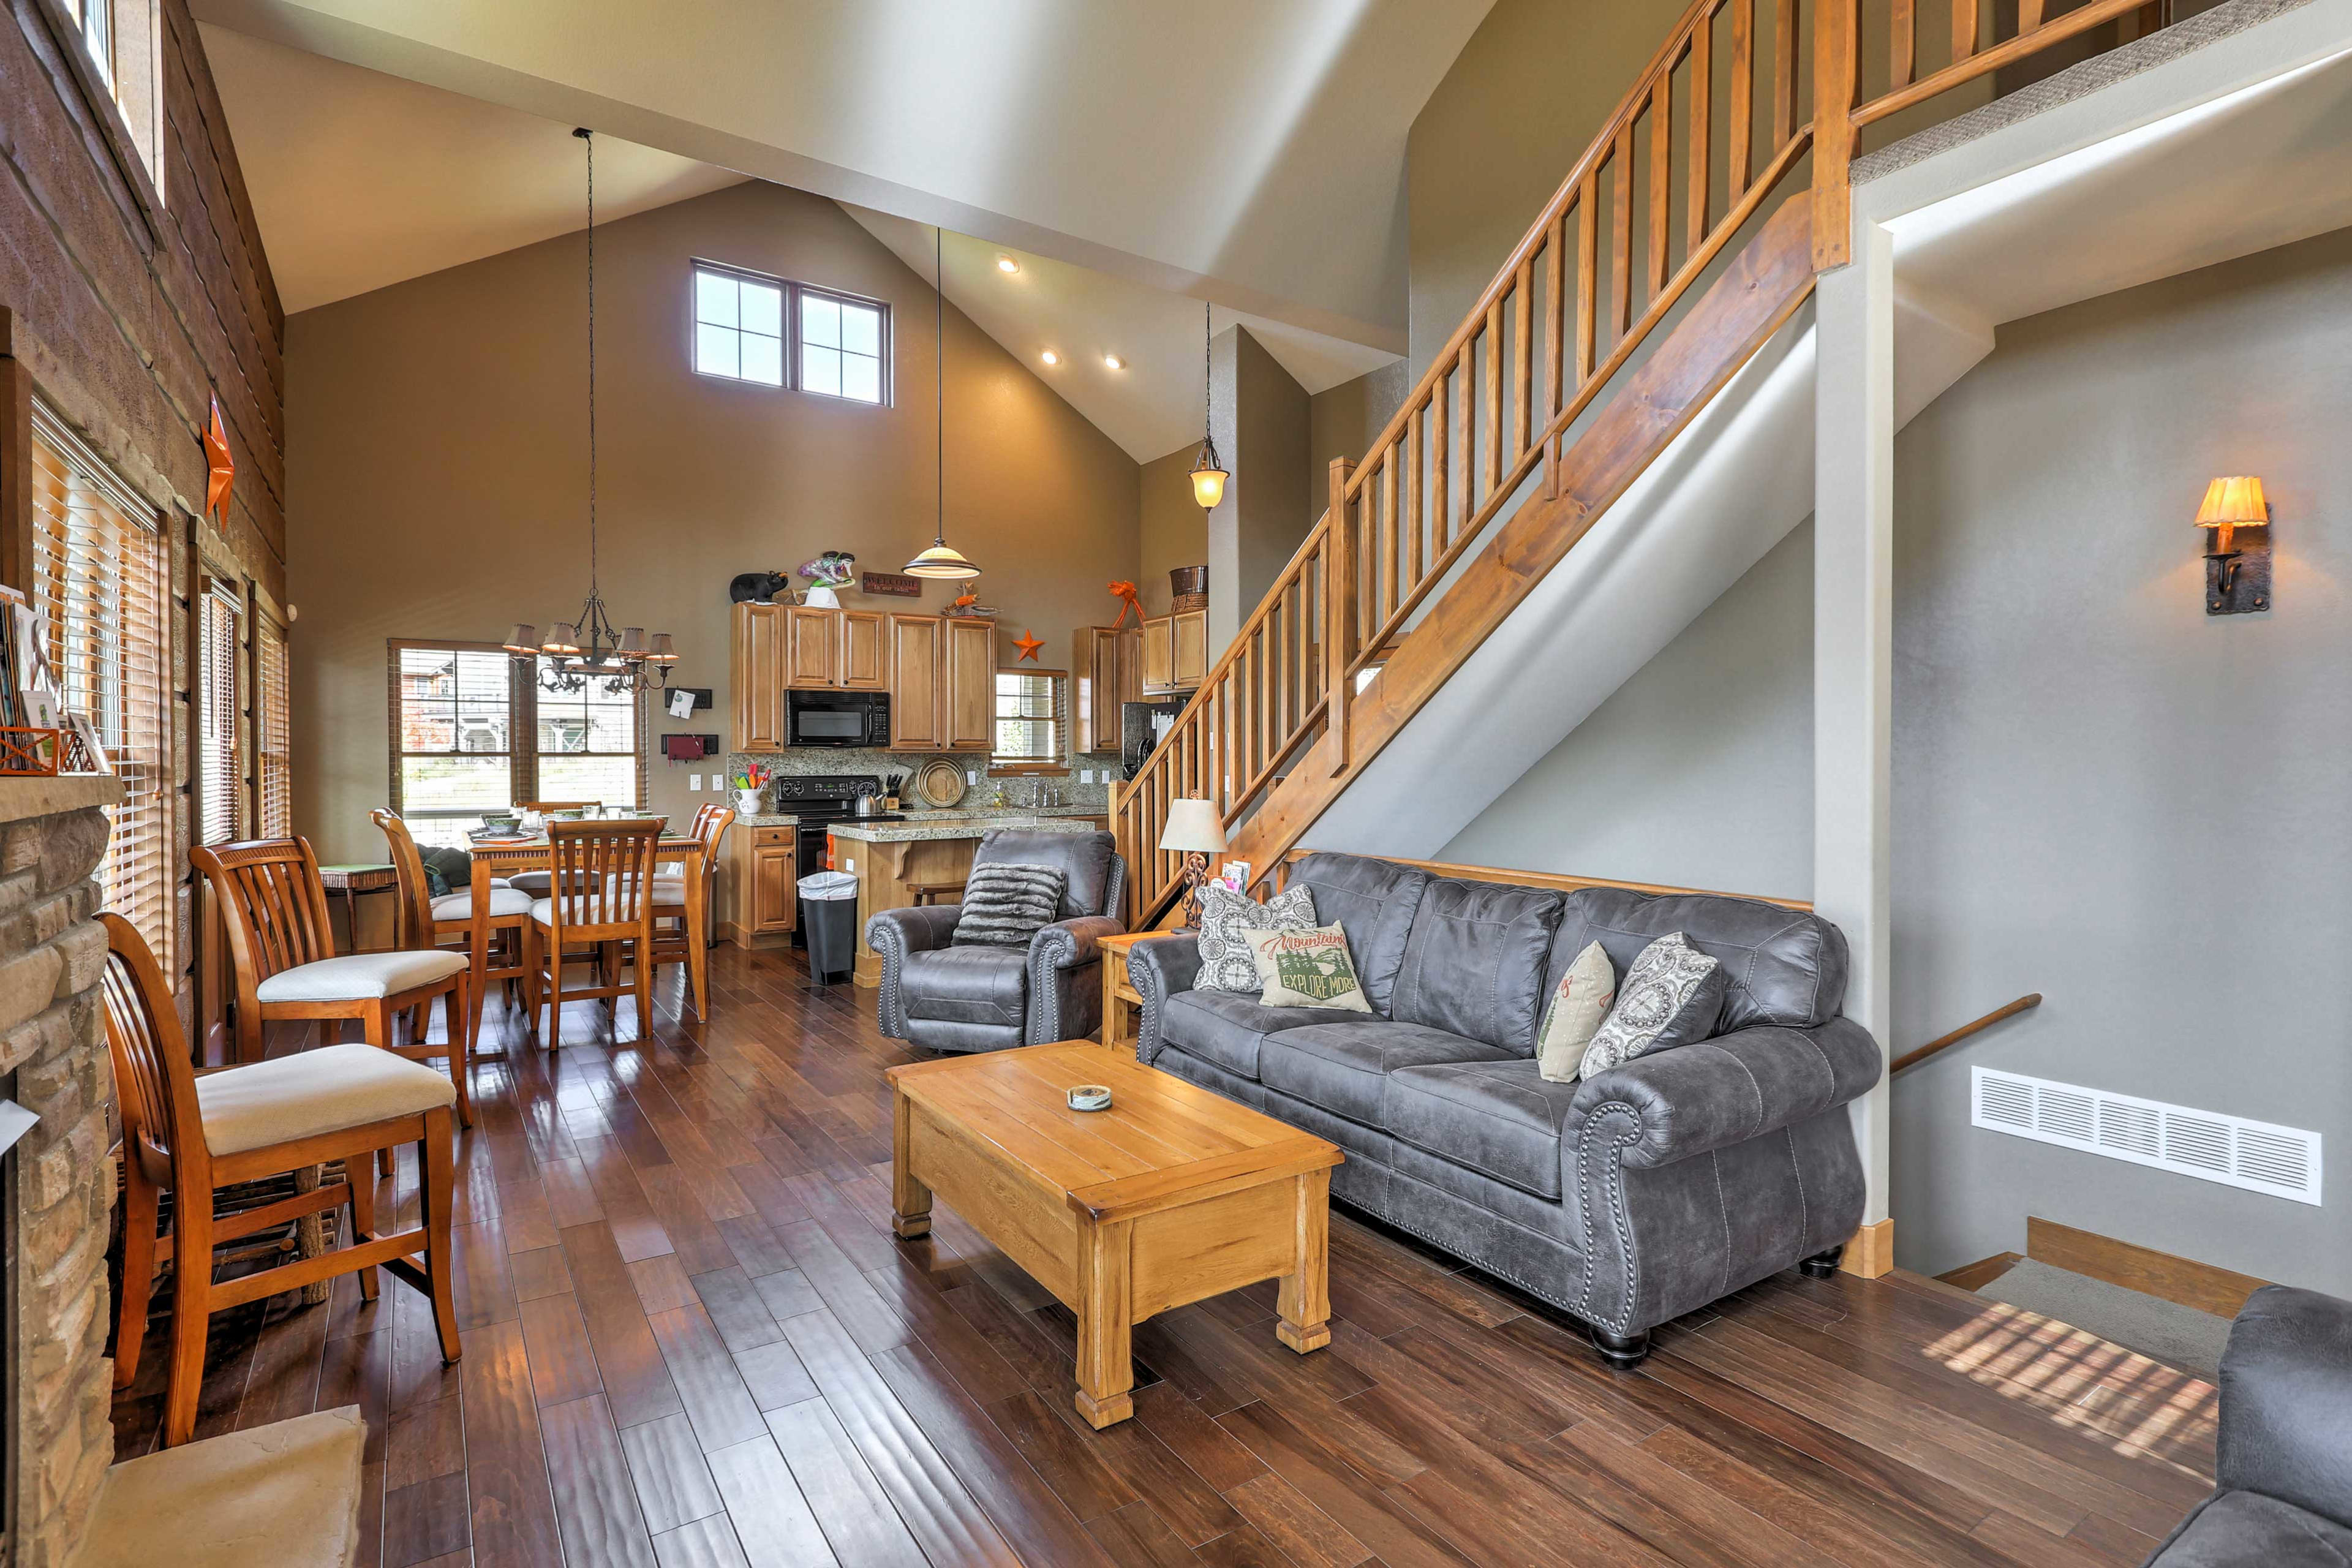 Walk over and turn on the gas fireplace in the living area.